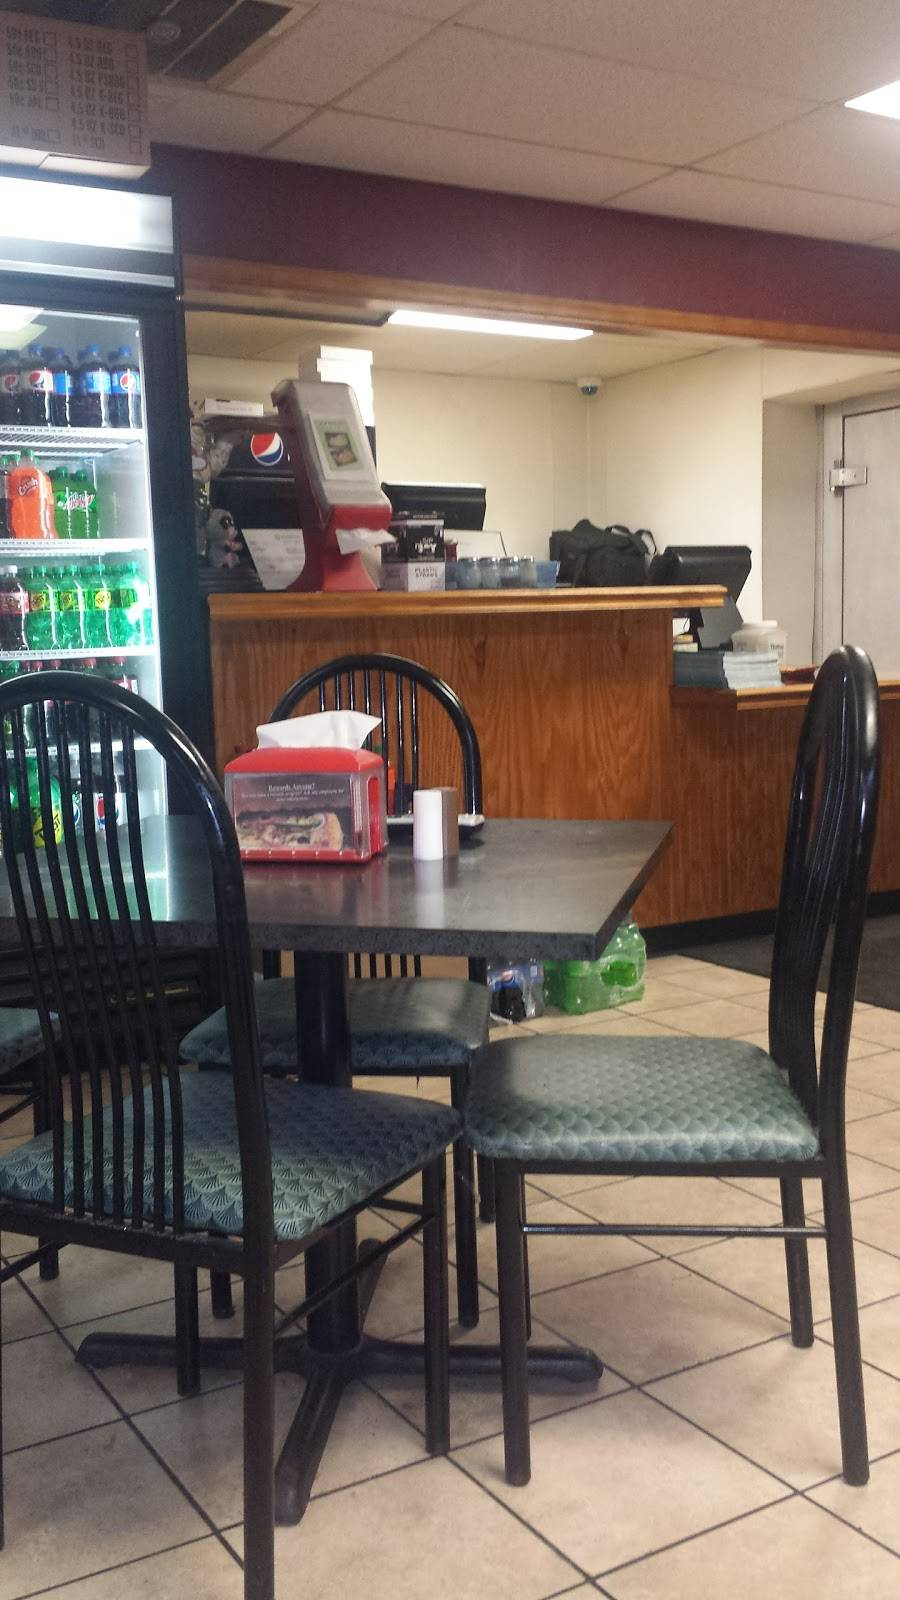 Rocky's Sweet Pizzz Pizza   meal delivery   232 S Lehigh Ave, Frackville, PA 17931, USA   5708741112 OR +1 570-874-1112